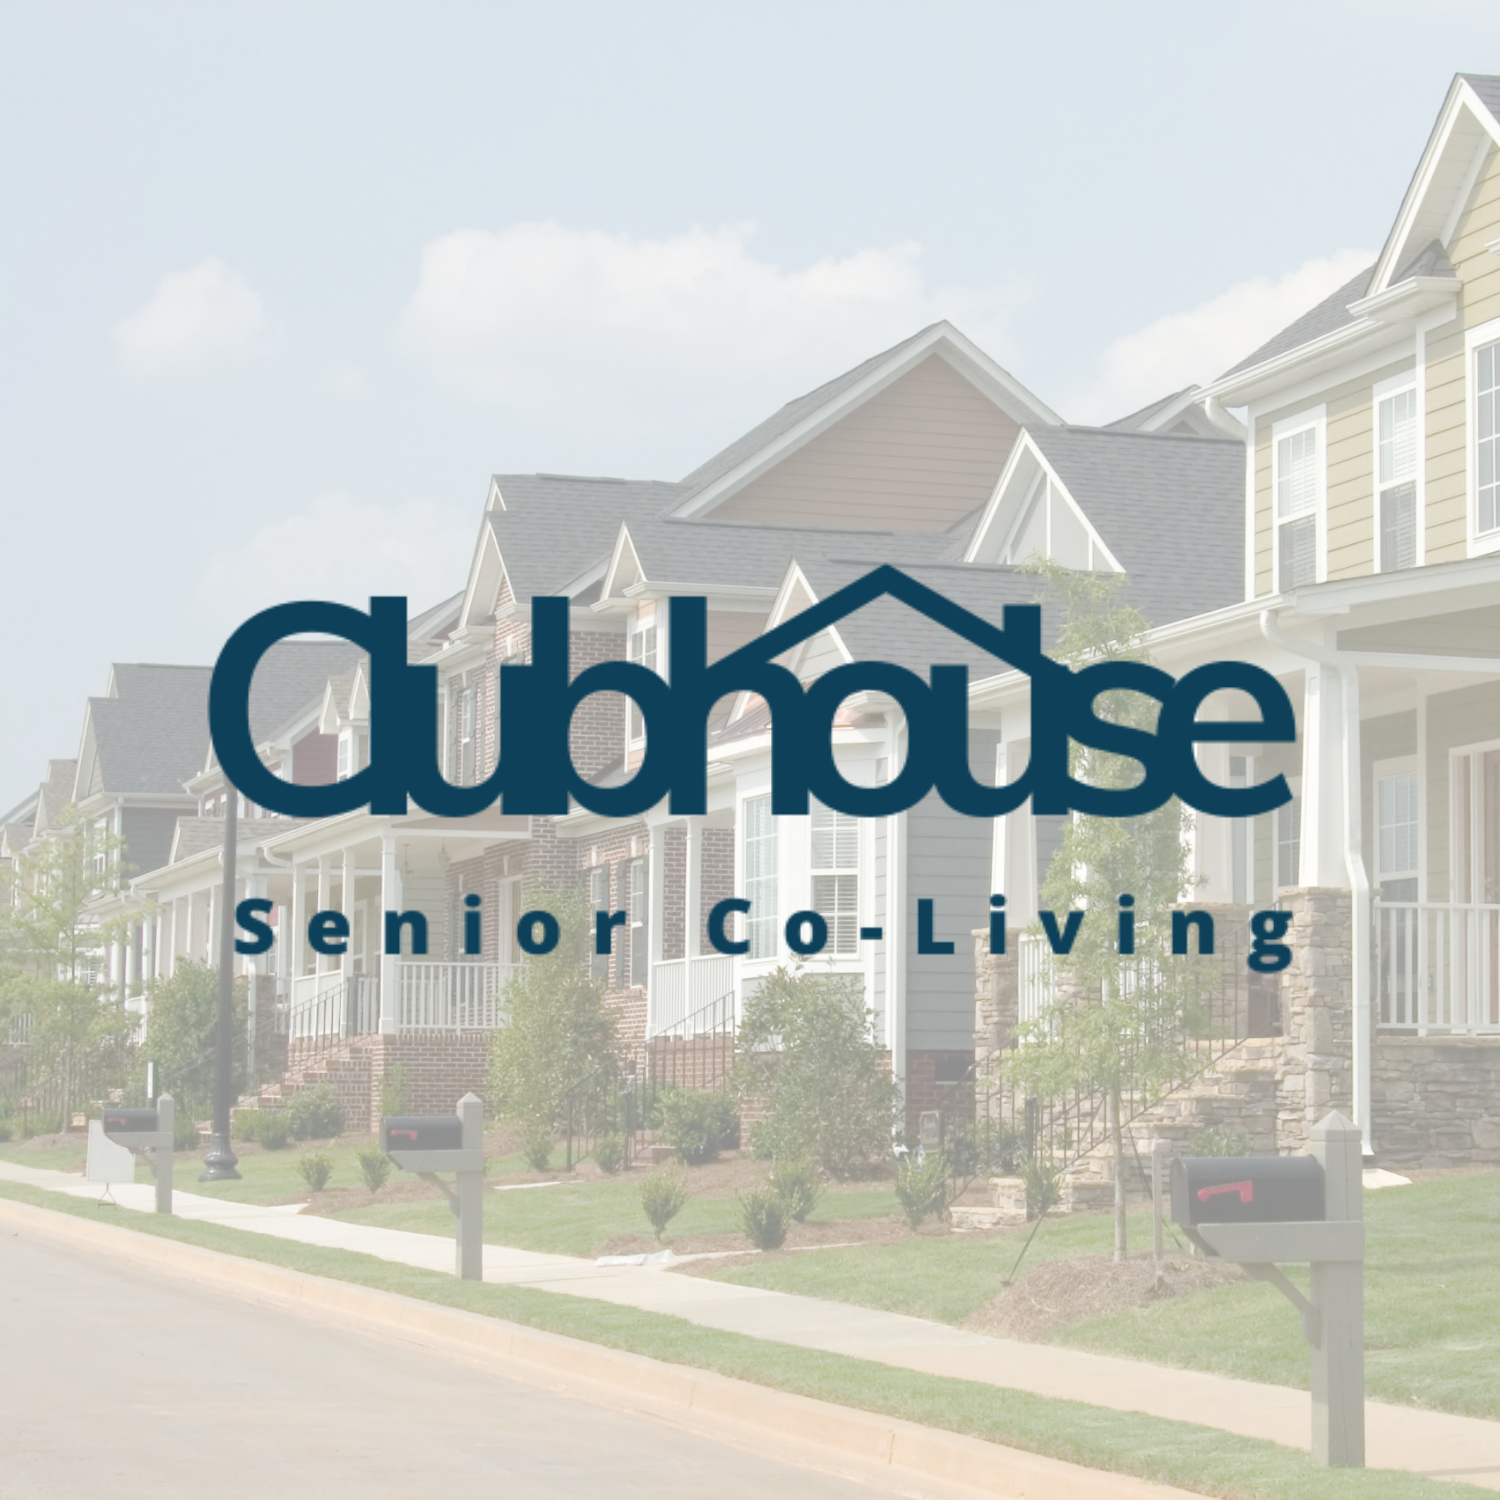 Clubhouse Senior Co-Living